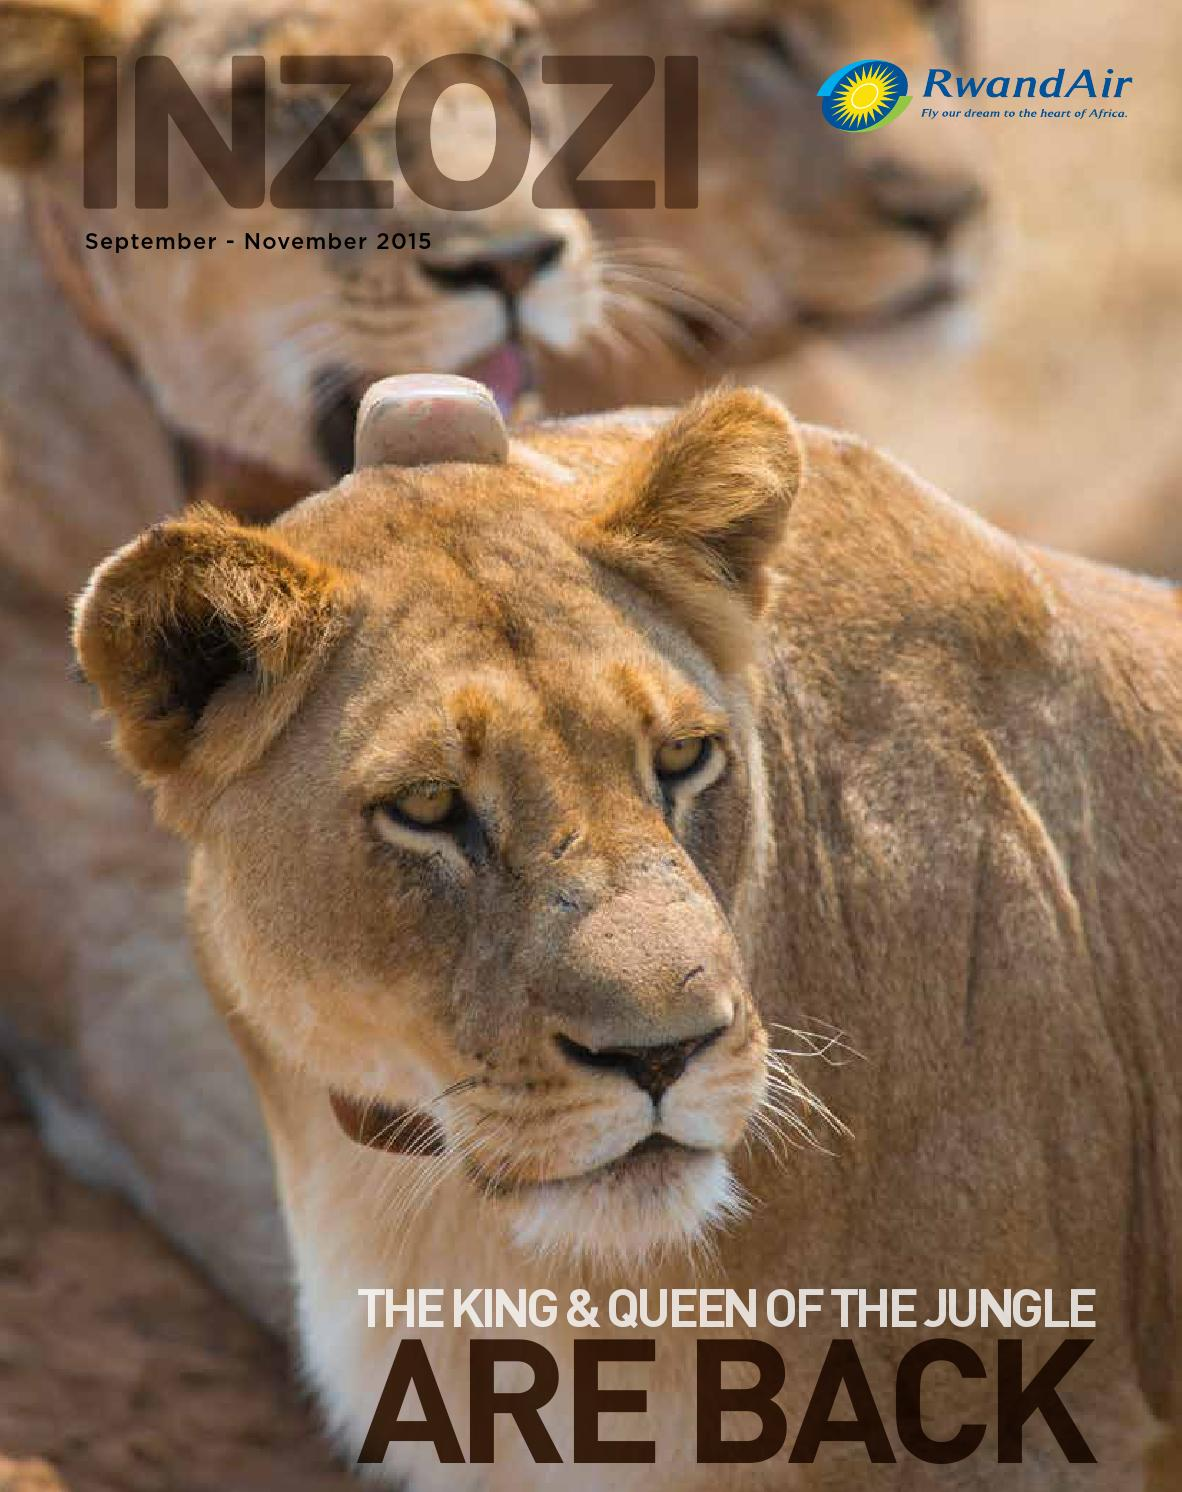 Souvent Rwandair Inzozi Magazine March 2017 by Inzozi Magazine - issuu KB96